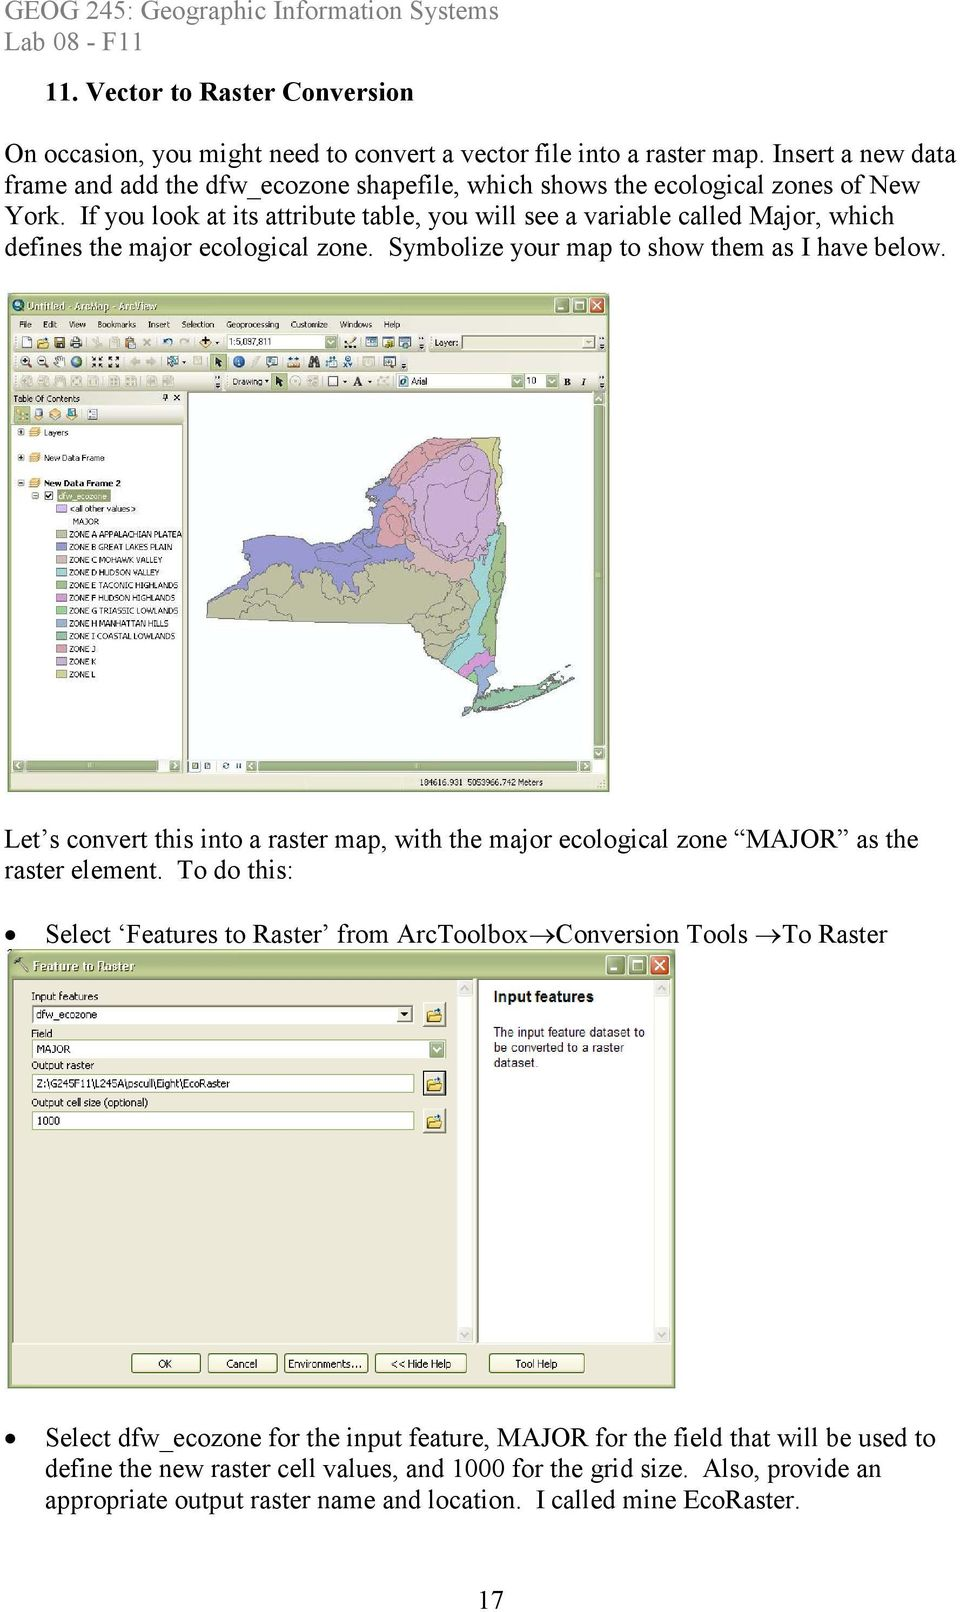 If you look at its attribute table, you will see a variable called Major, which defines the major ecological zone. Symbolize your map to show them as I have below.